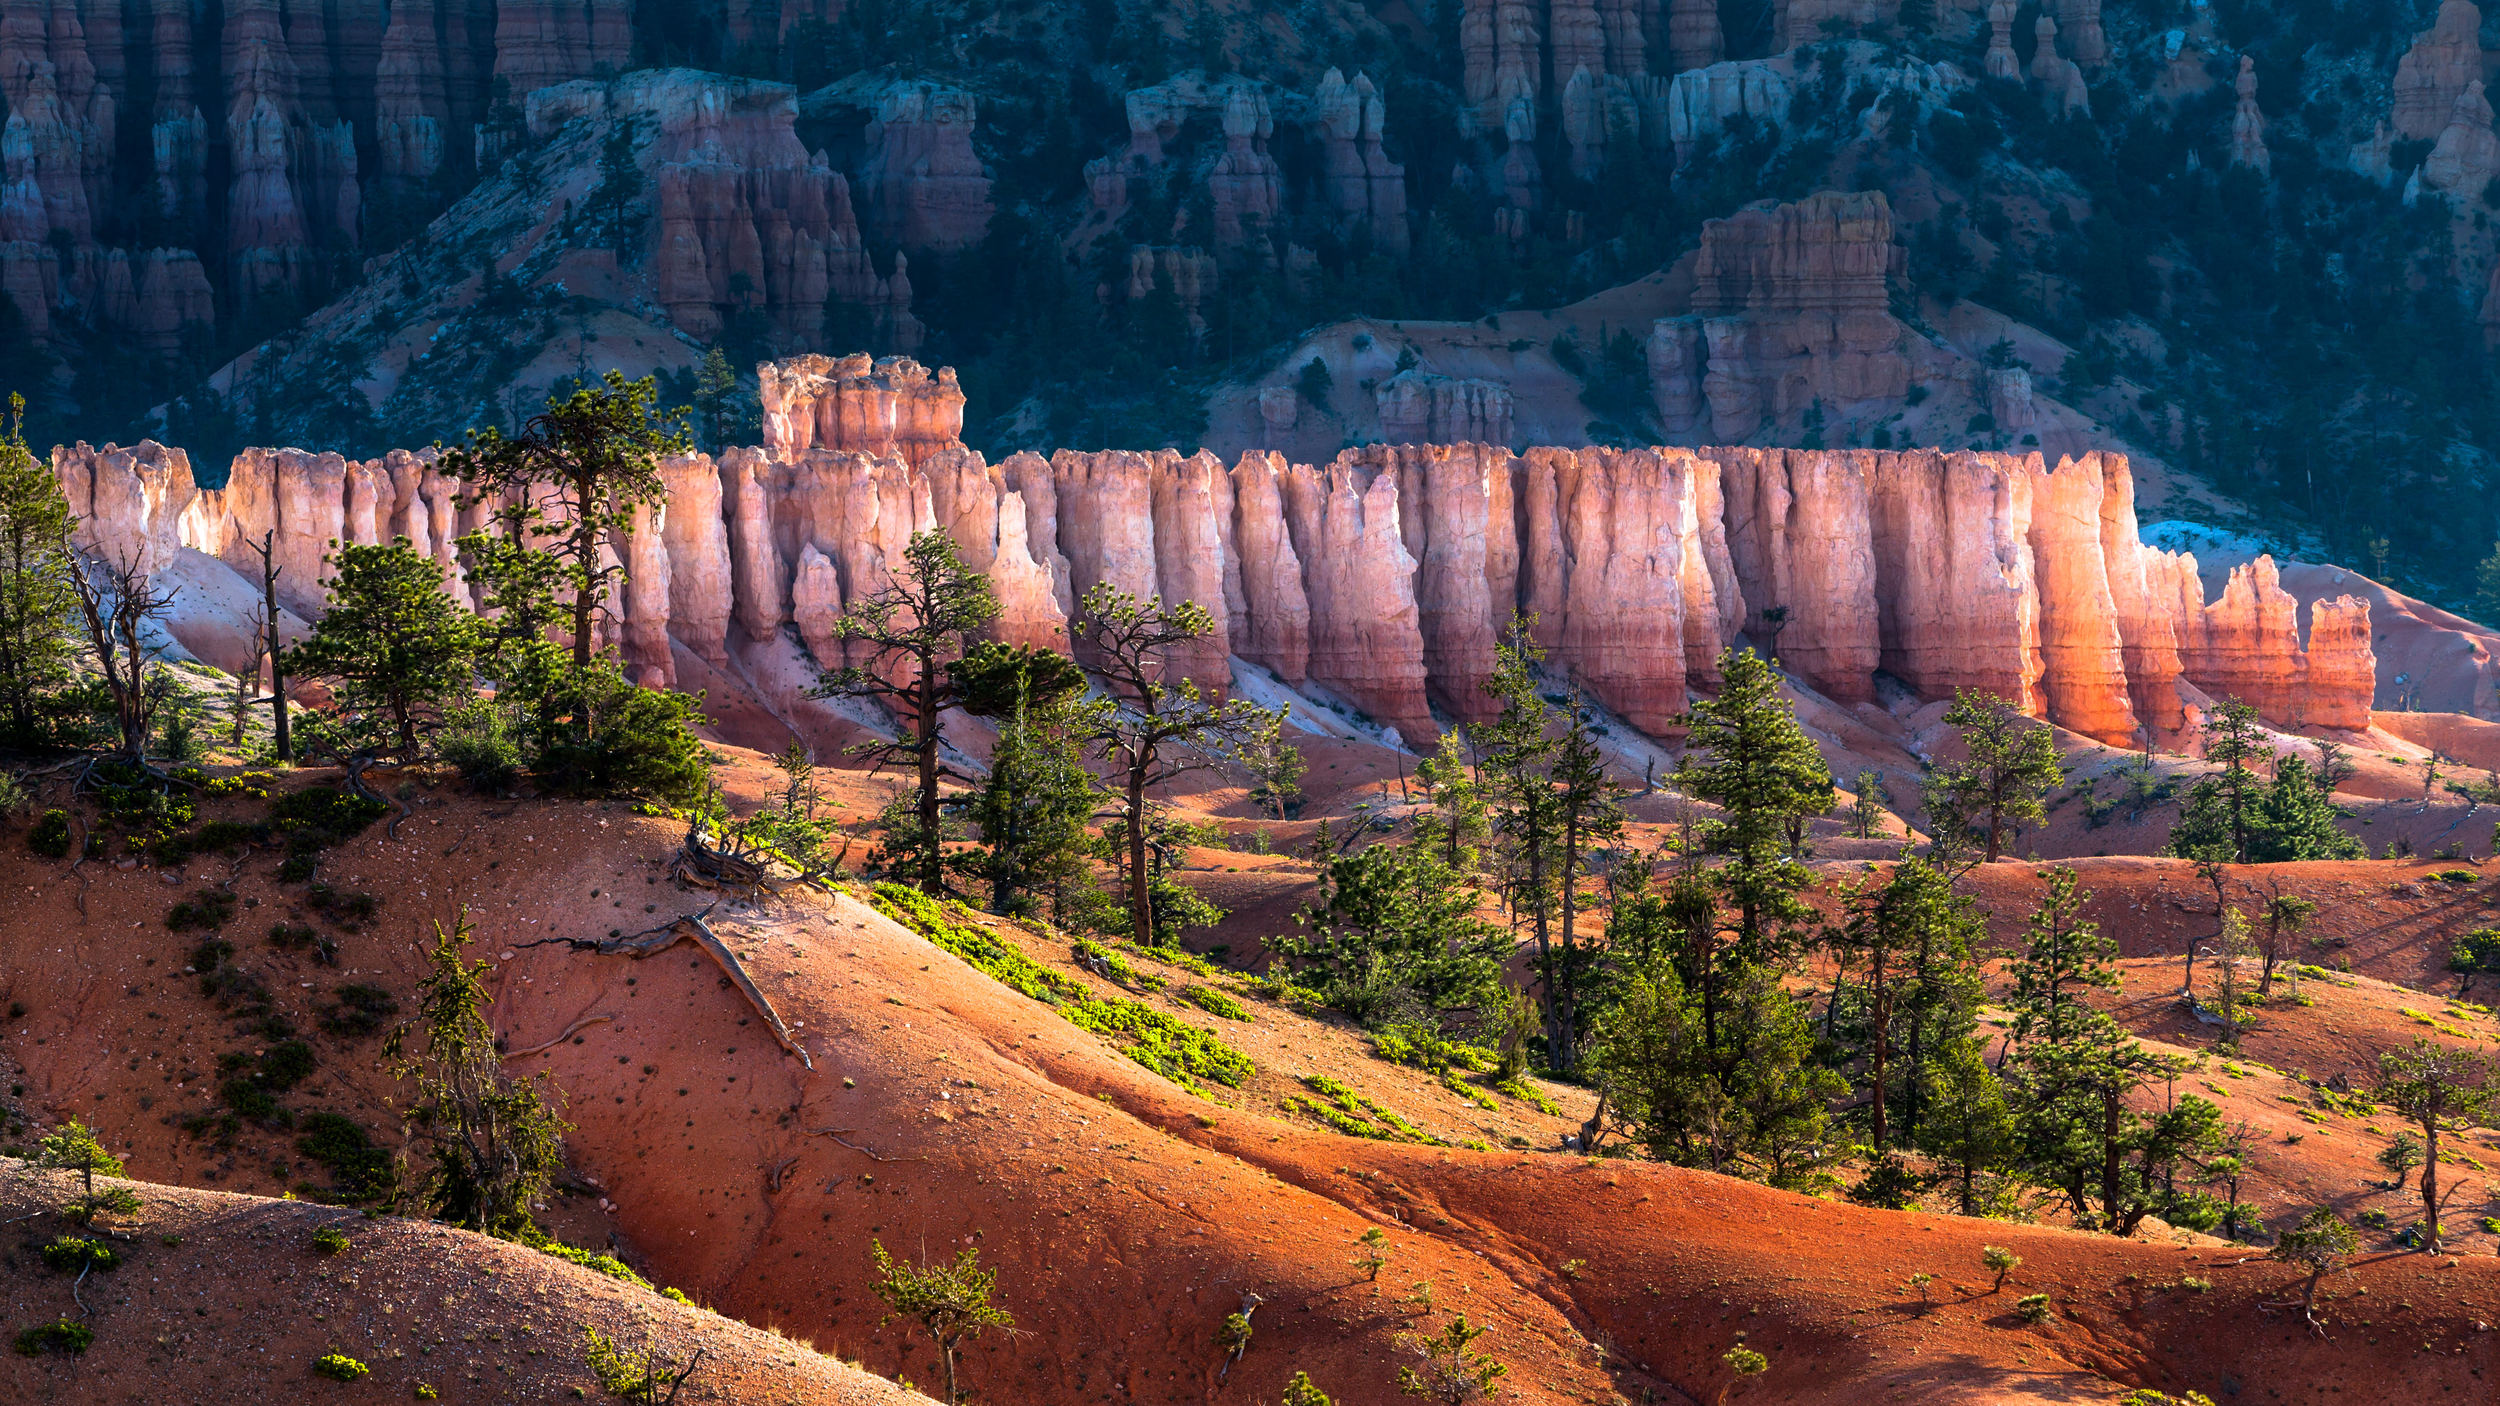 beautiful formations in bryce canyon national park –(PHOTO: OSCITY/SHUTTERSTOCK)